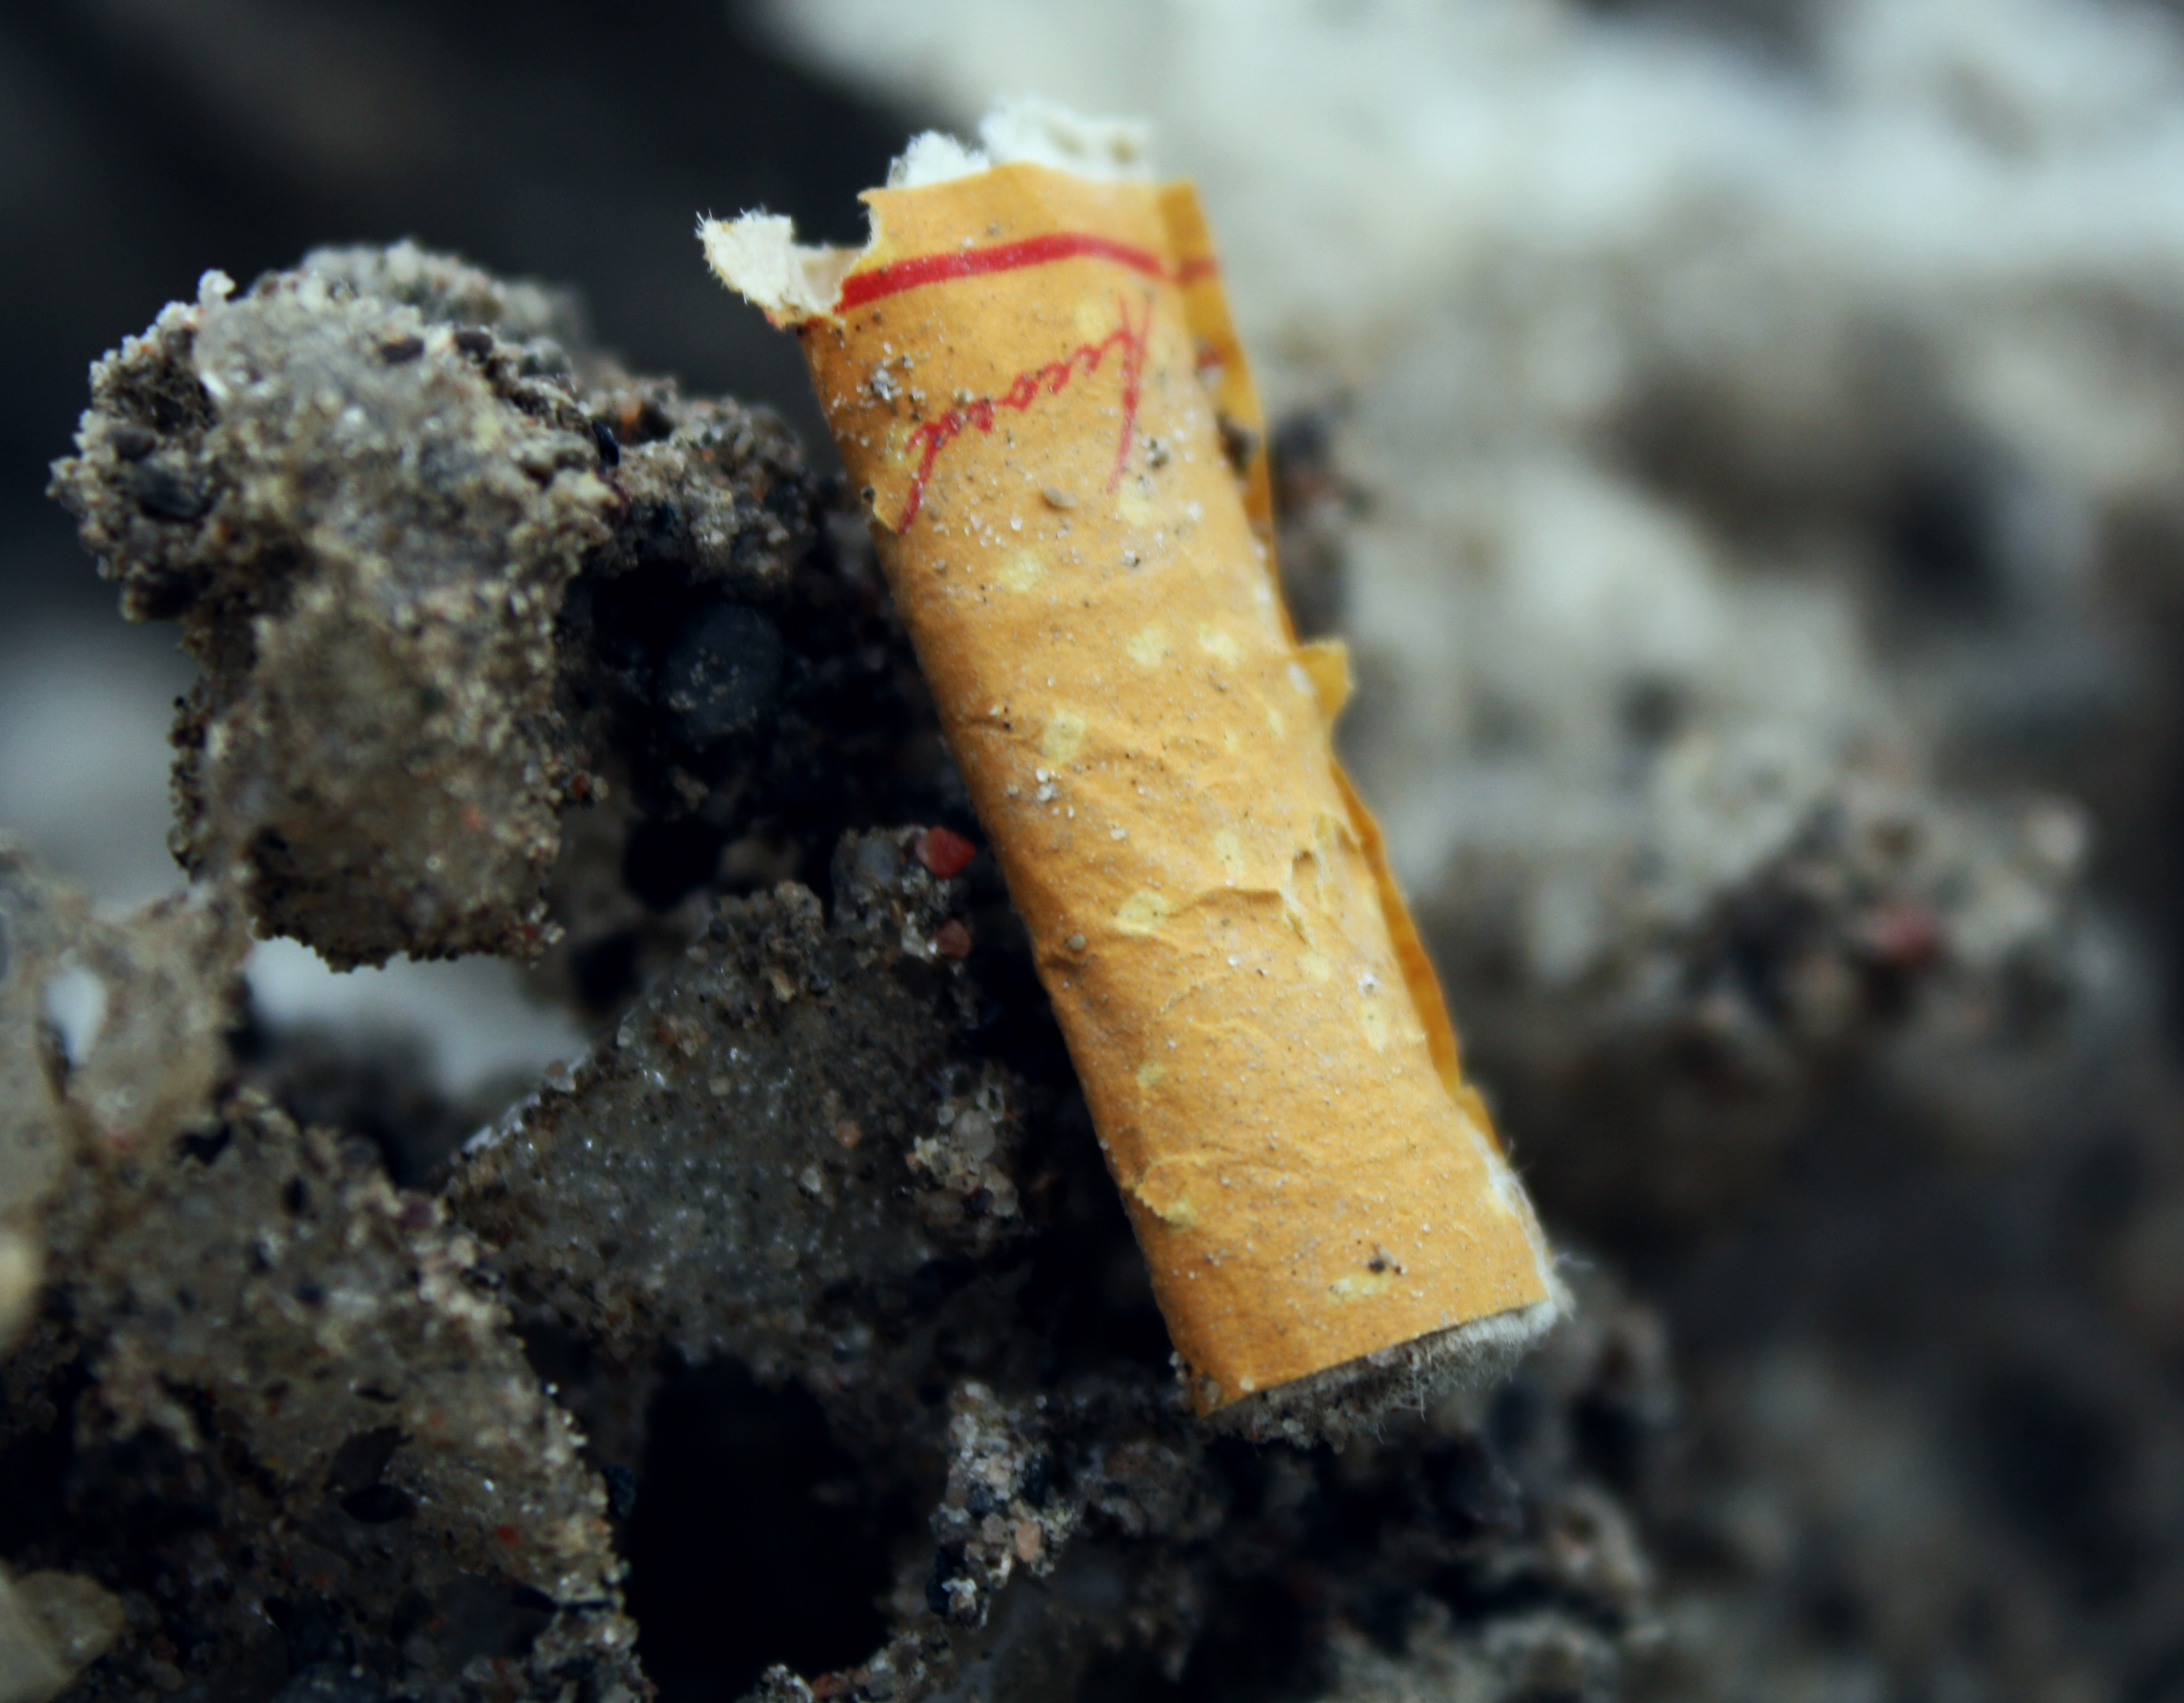 an image of quitting smoking Cigarette butt